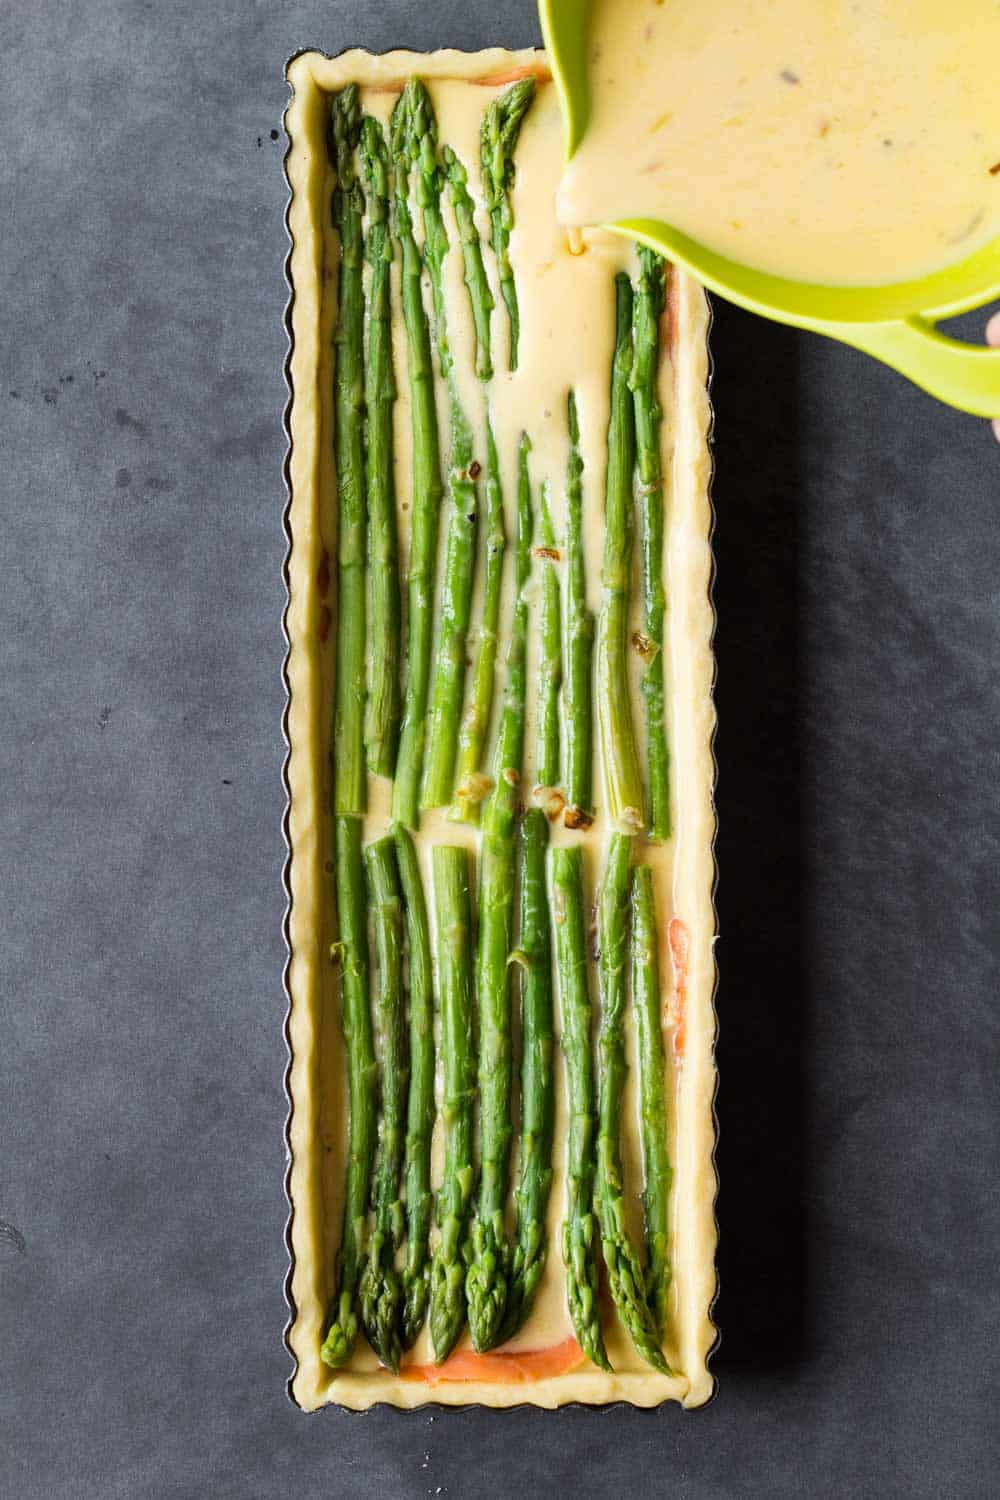 pouring egg batter into a tart pan over asparagus spears to make quiche